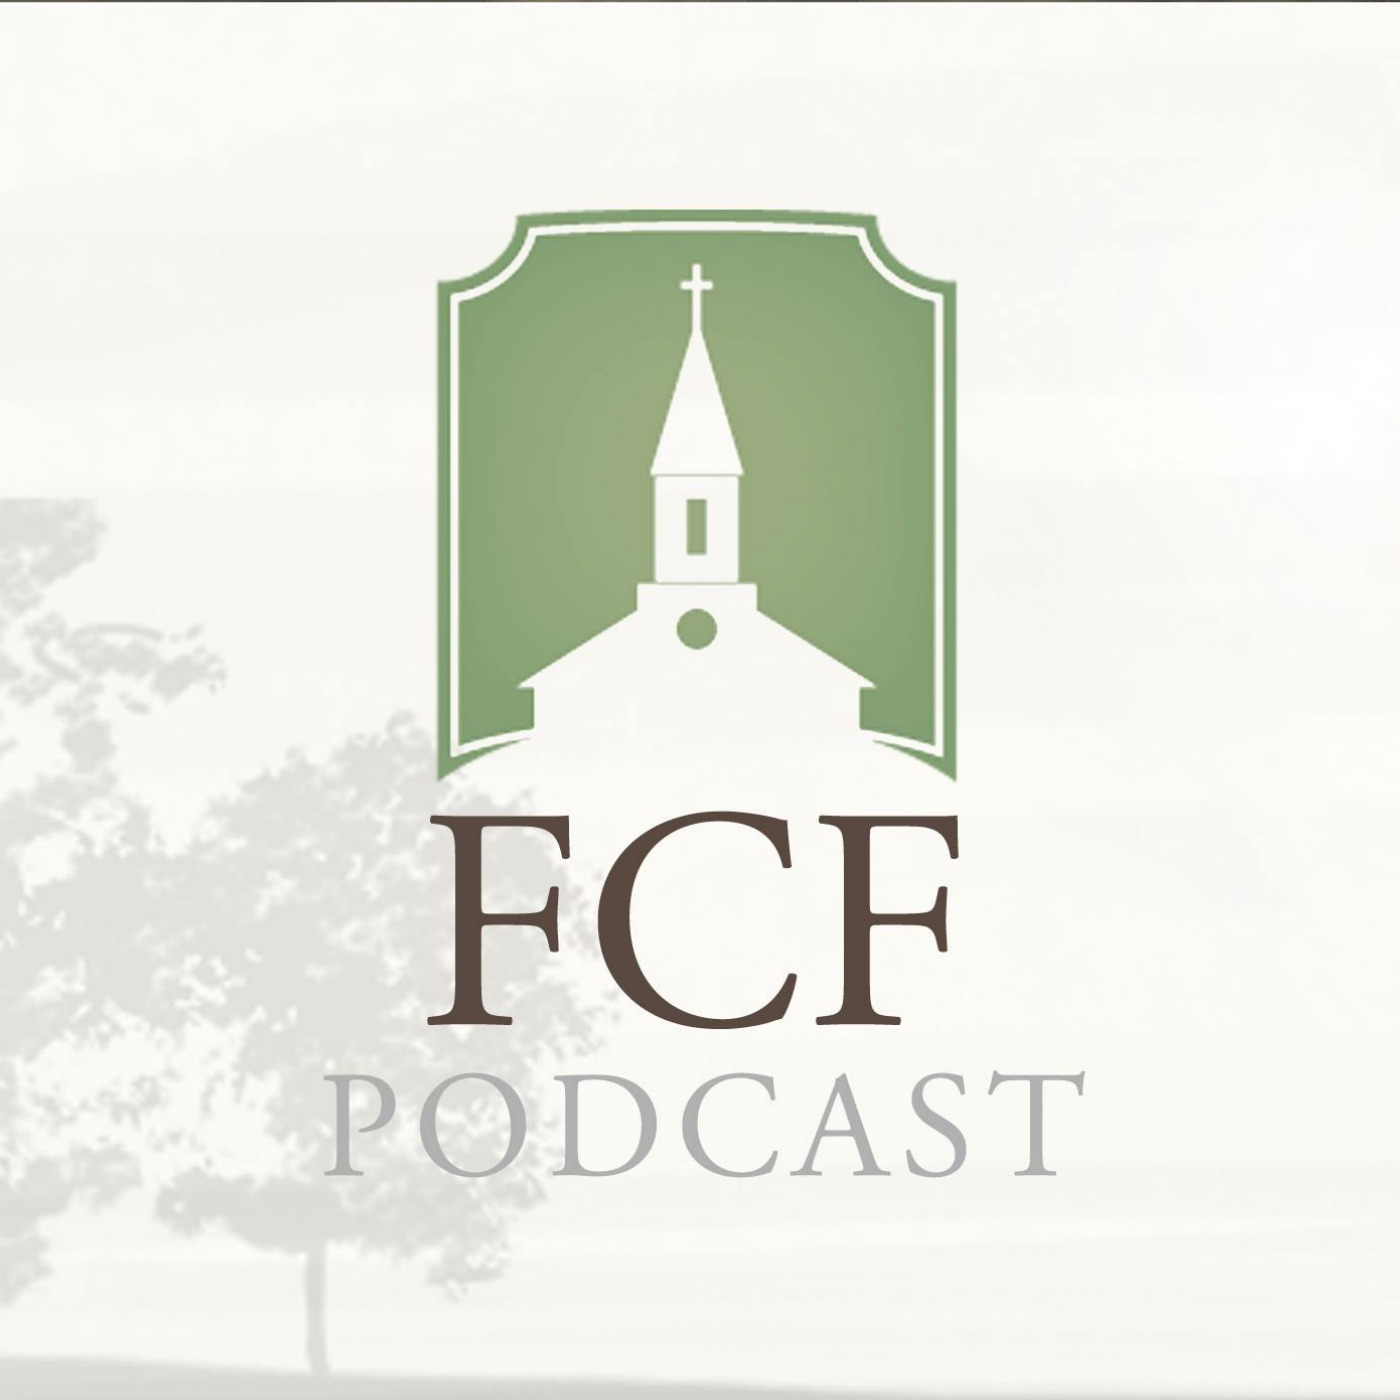 FCF Podcast